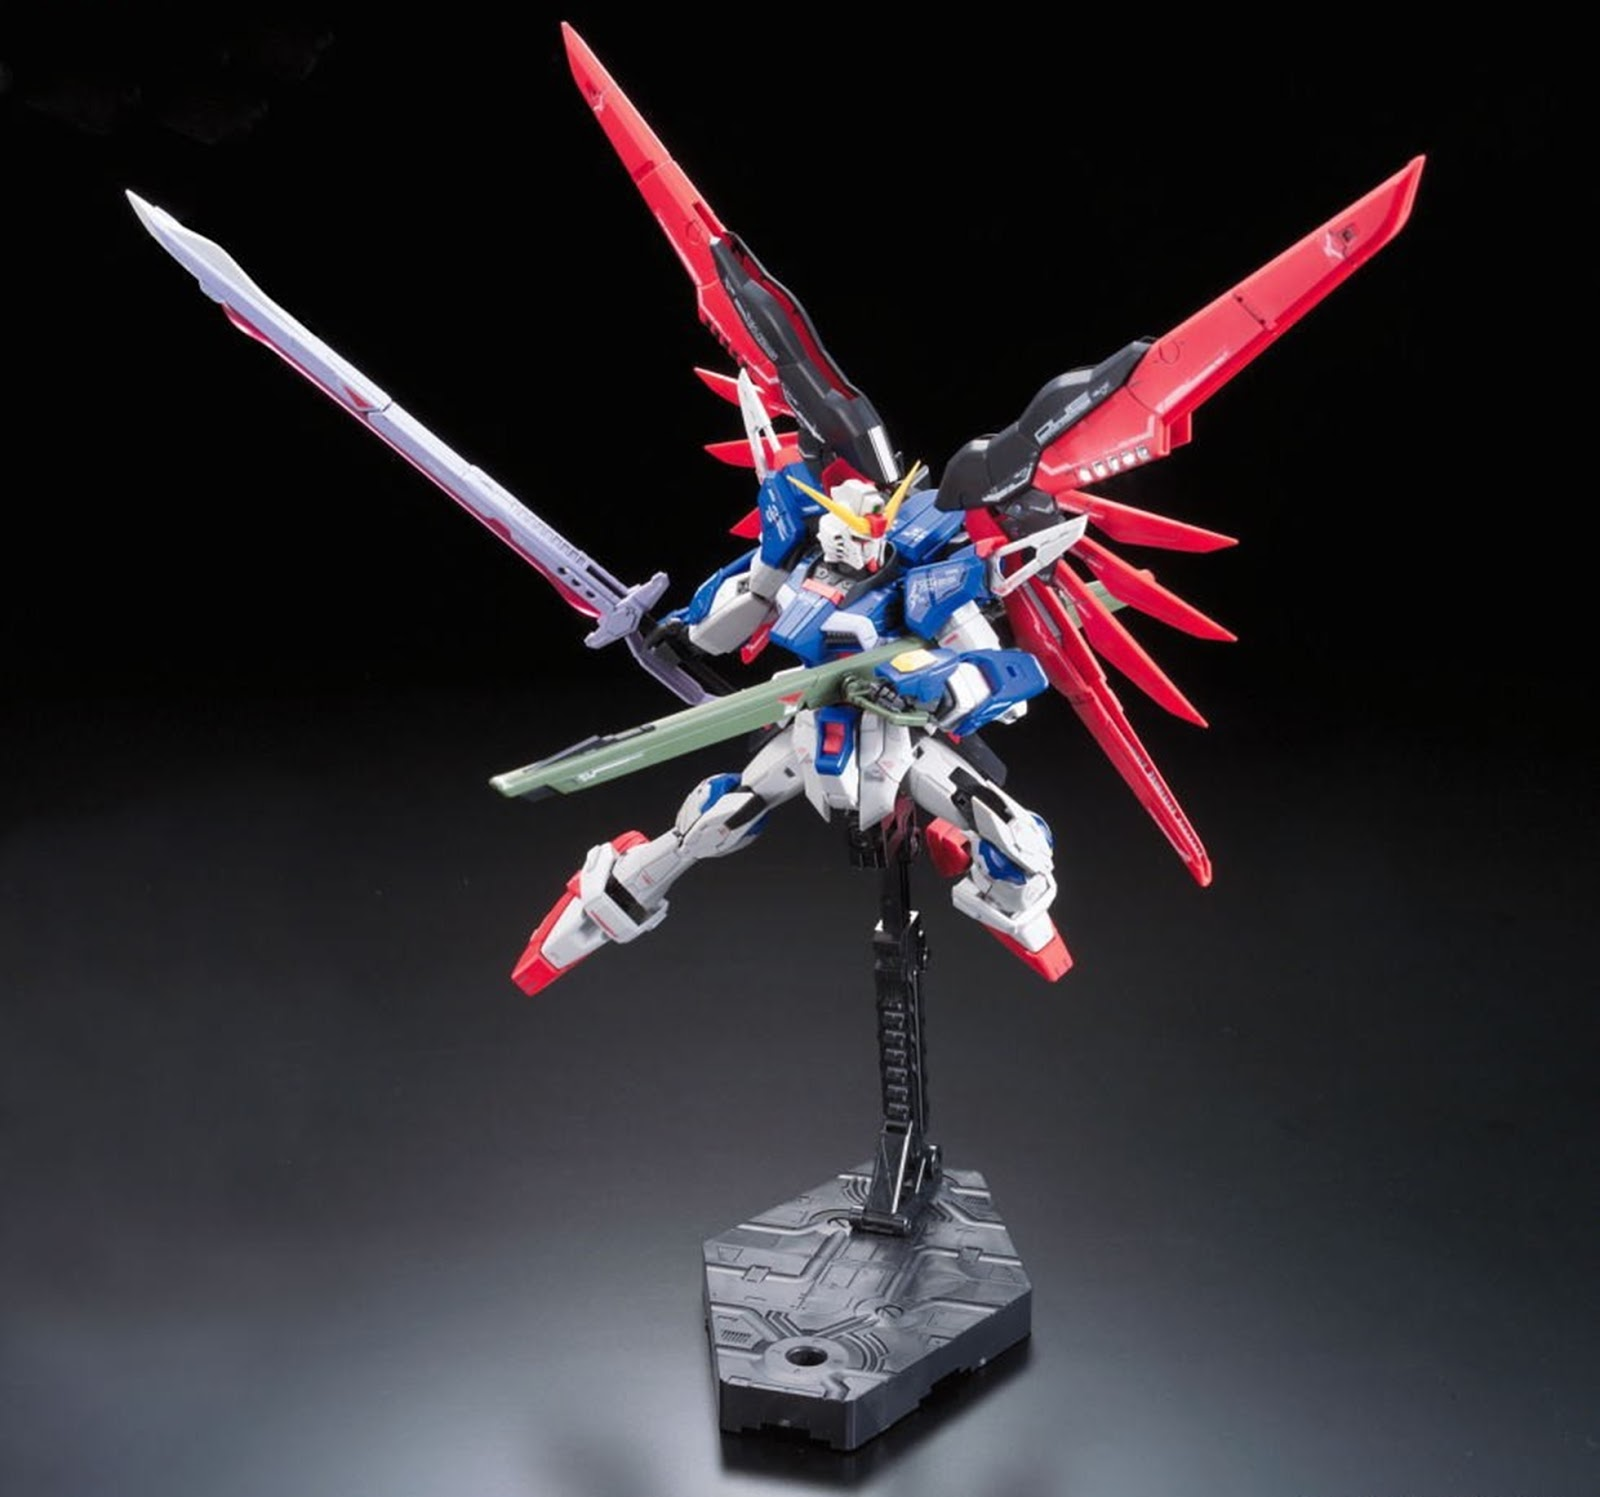 destiny gundam rg - photo #4